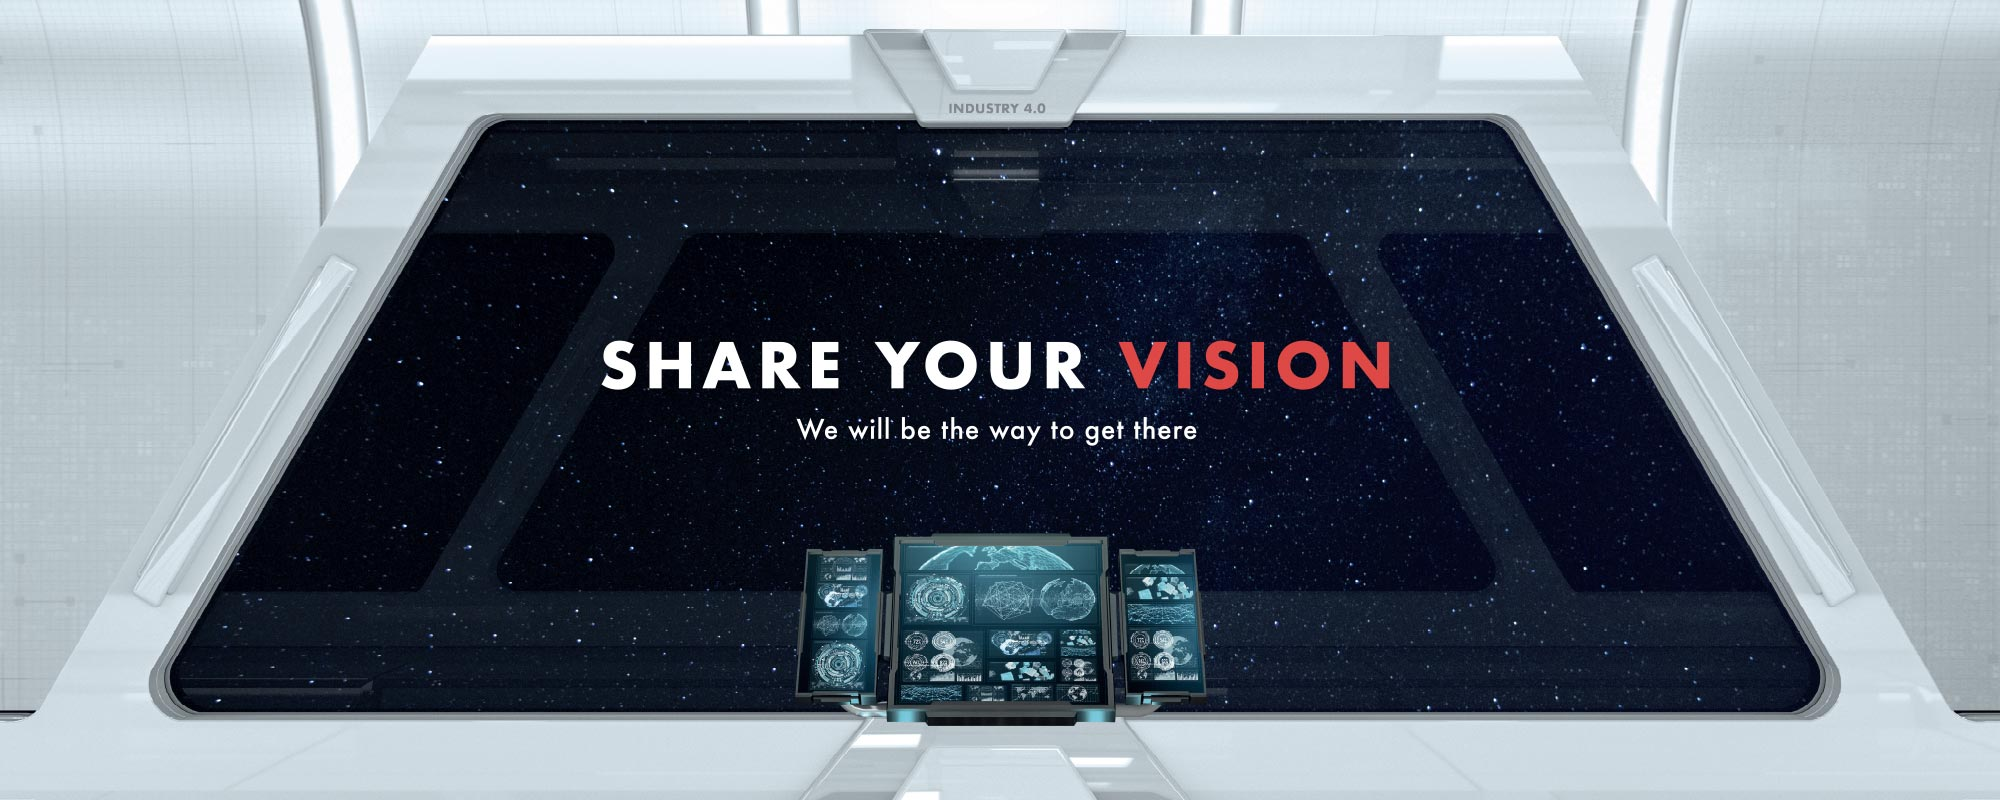 Share your vision - Friul Filiere